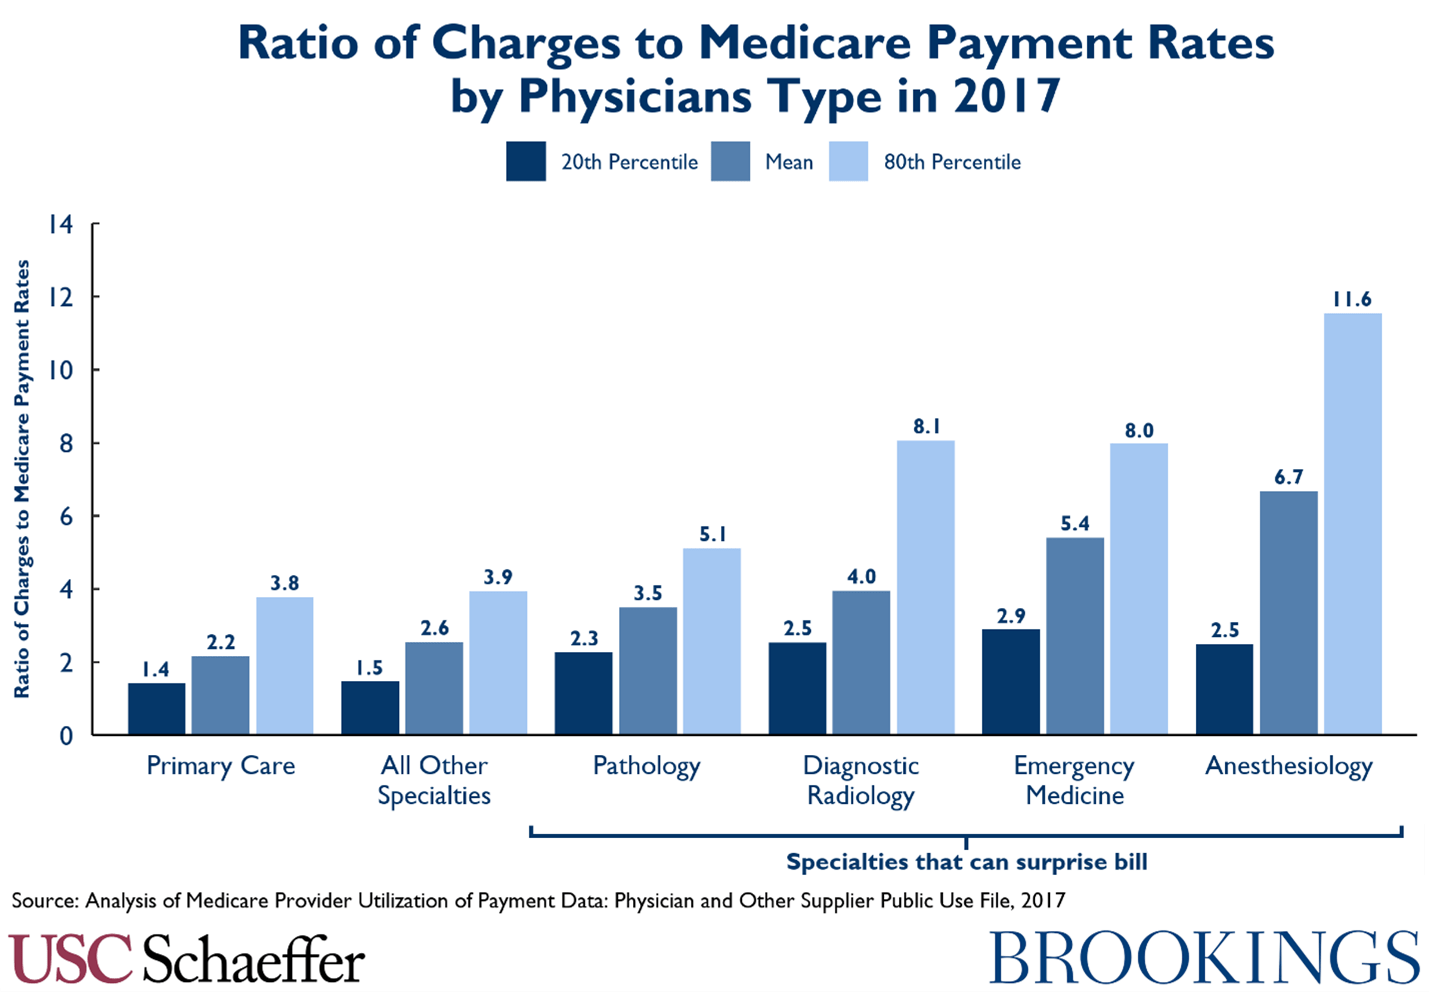 Ratio of charges to Medicare payment rates by physician type